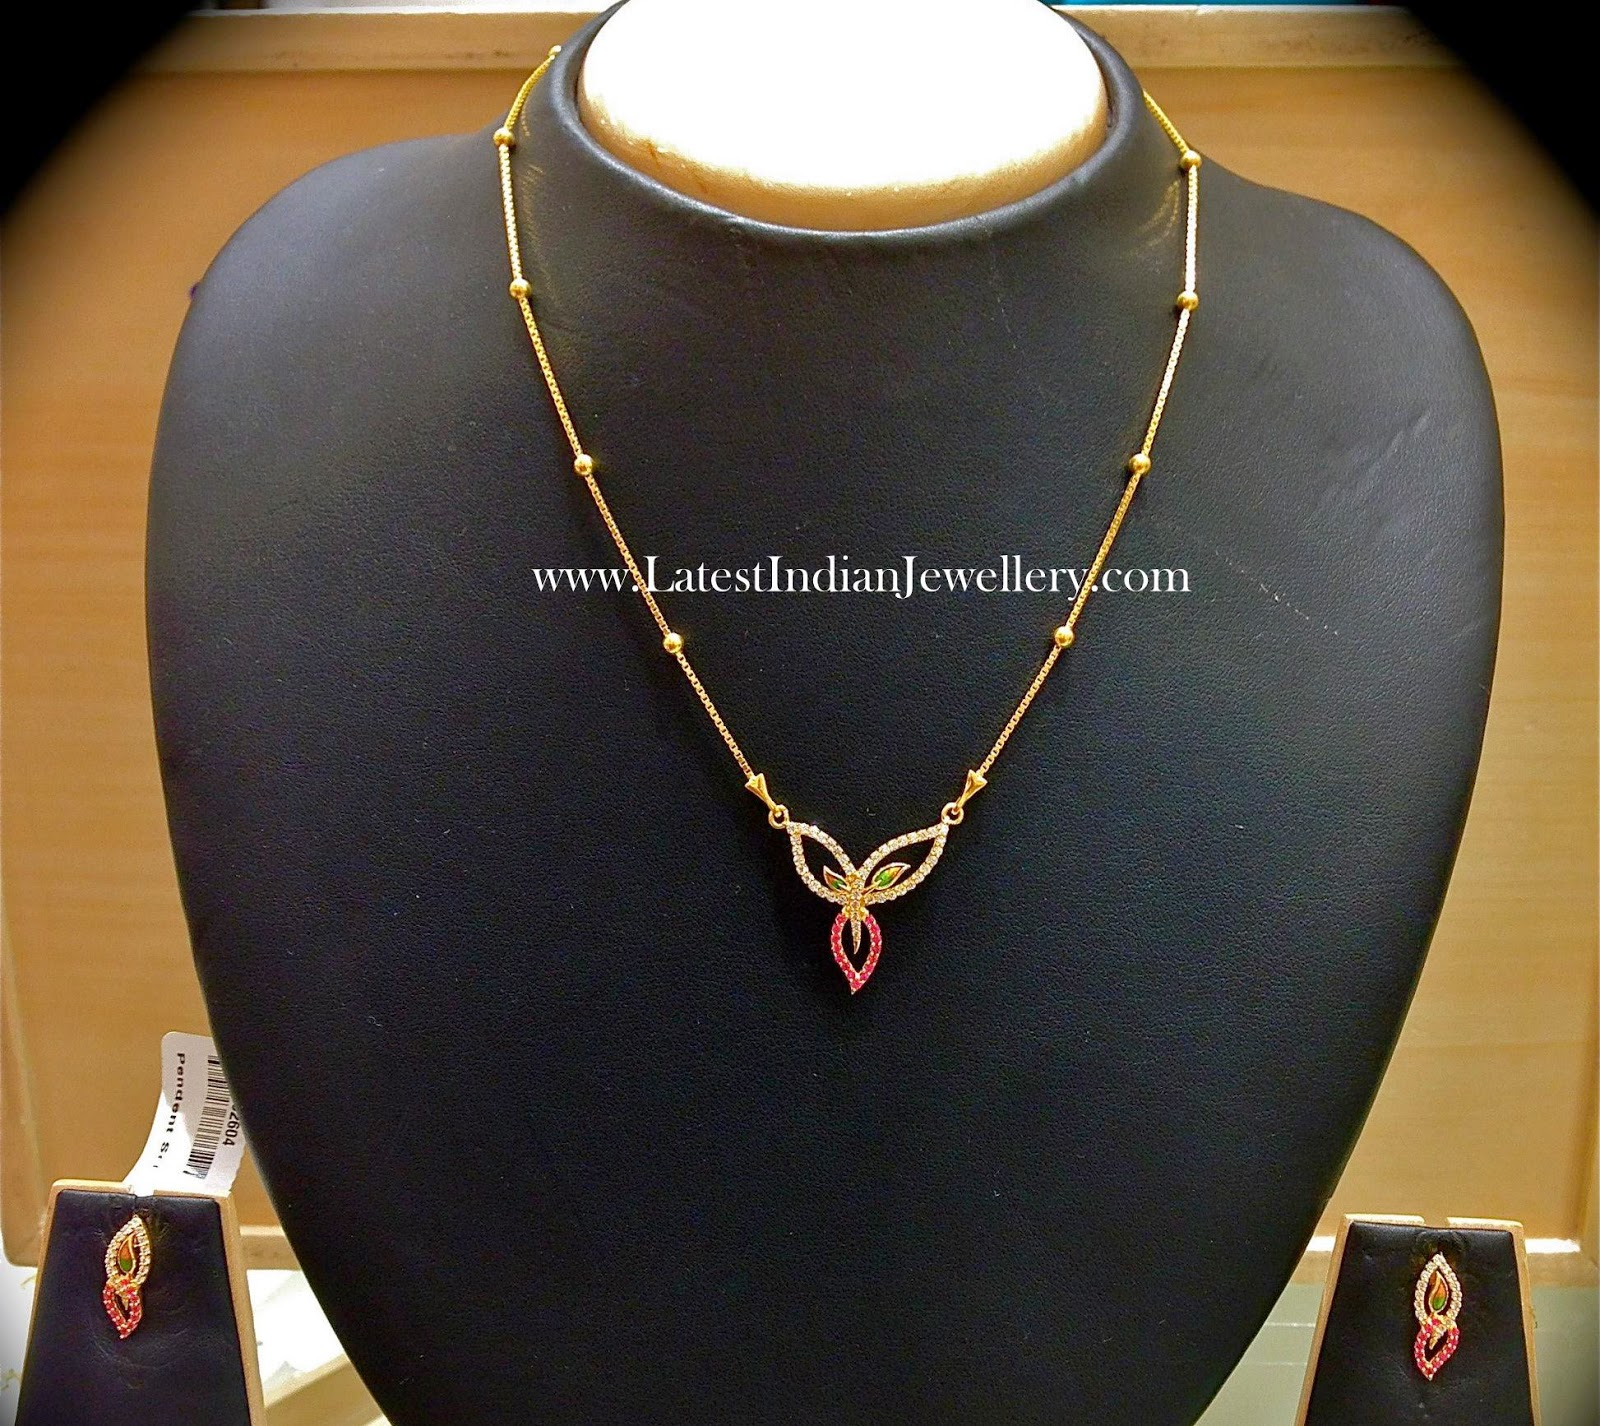 Elegant Light Weight Gold Necklace